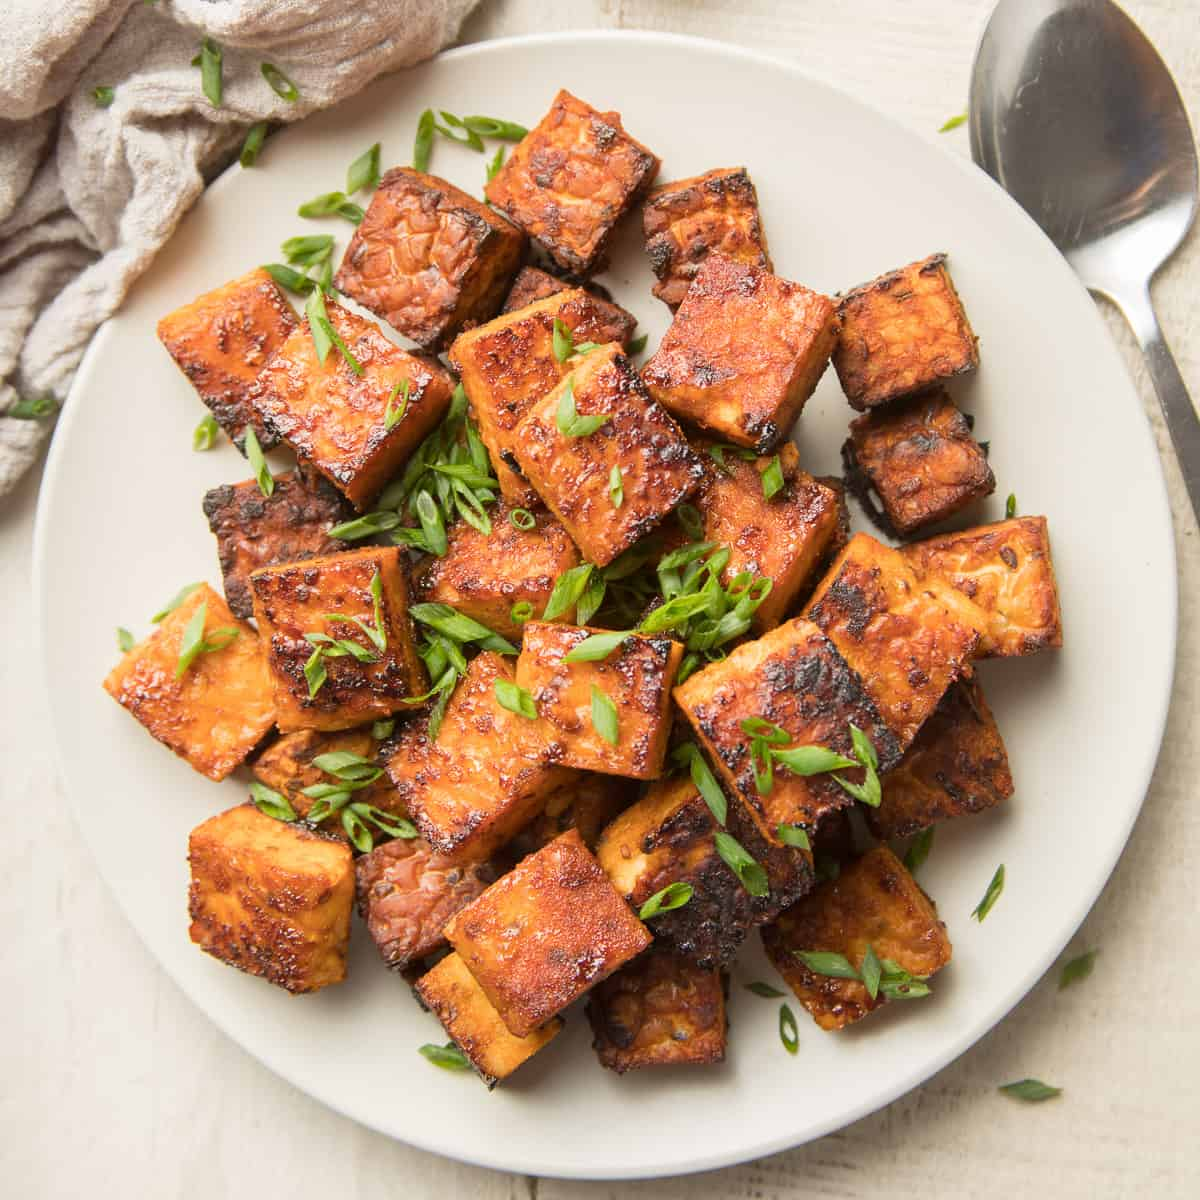 Plate of Smoky Marinated Tempeh with Chives on Top and Spoon on the Side.